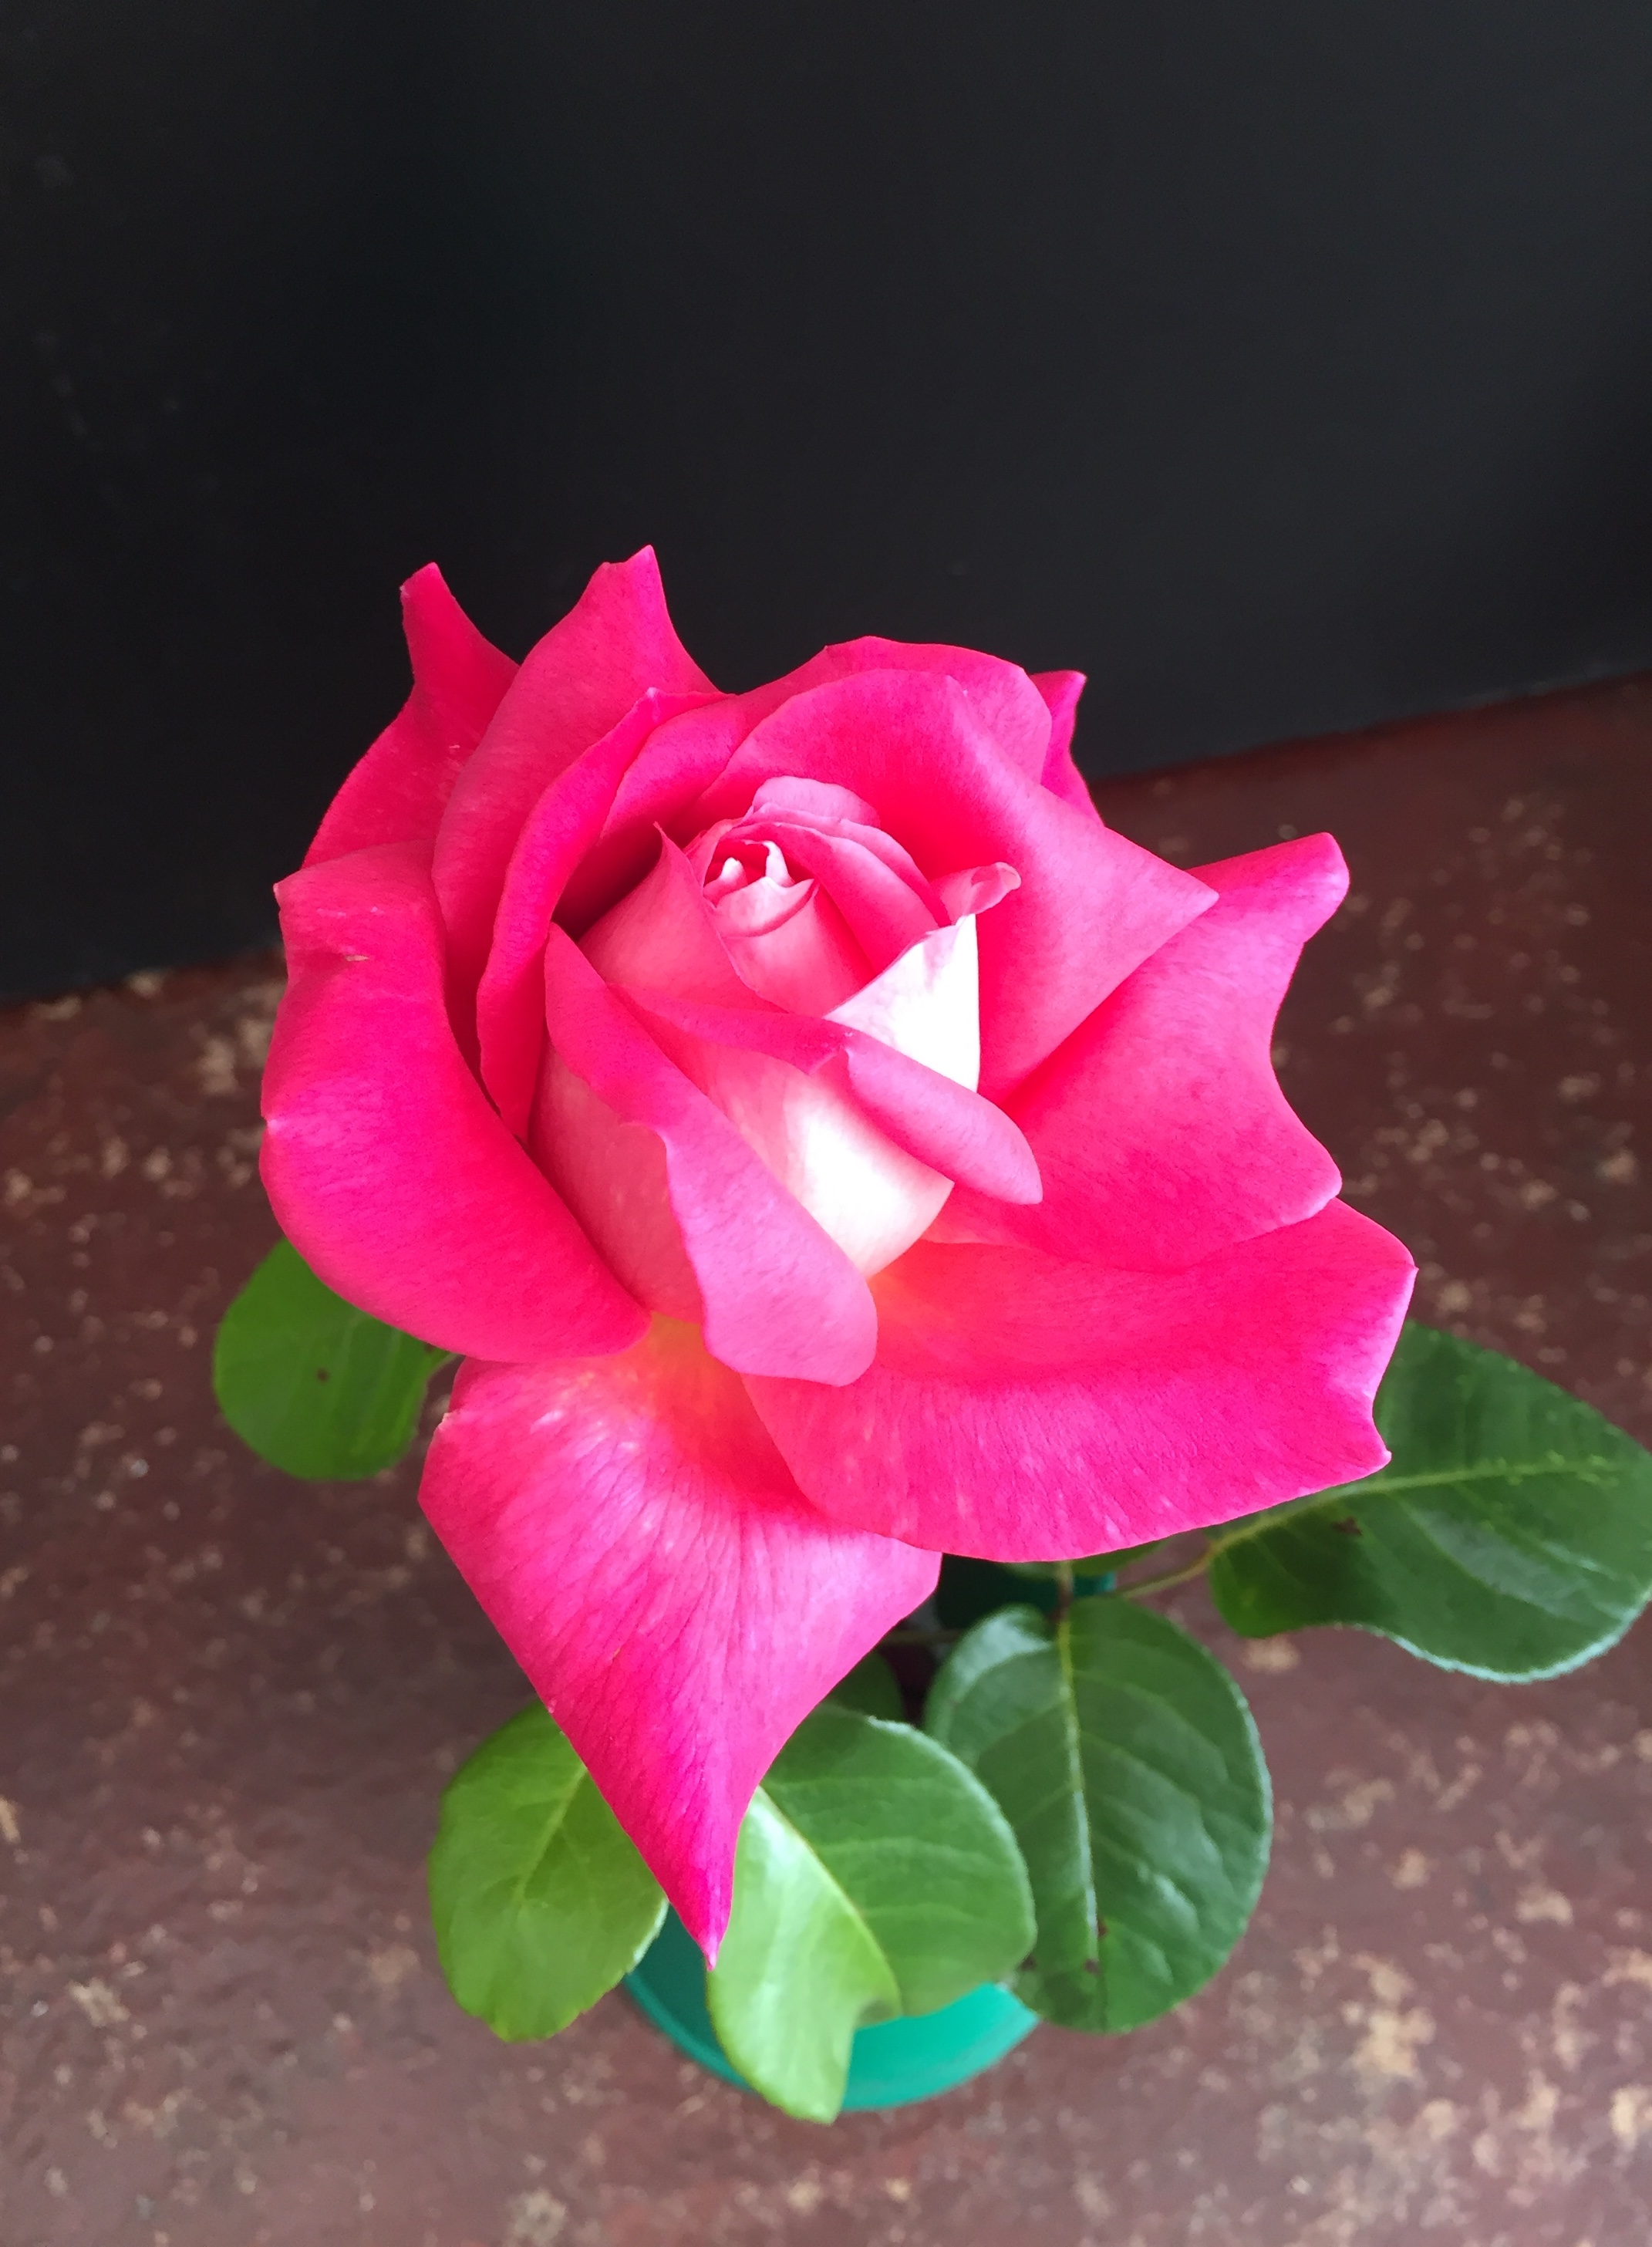 3rd Prize Rose, one specimen bloom